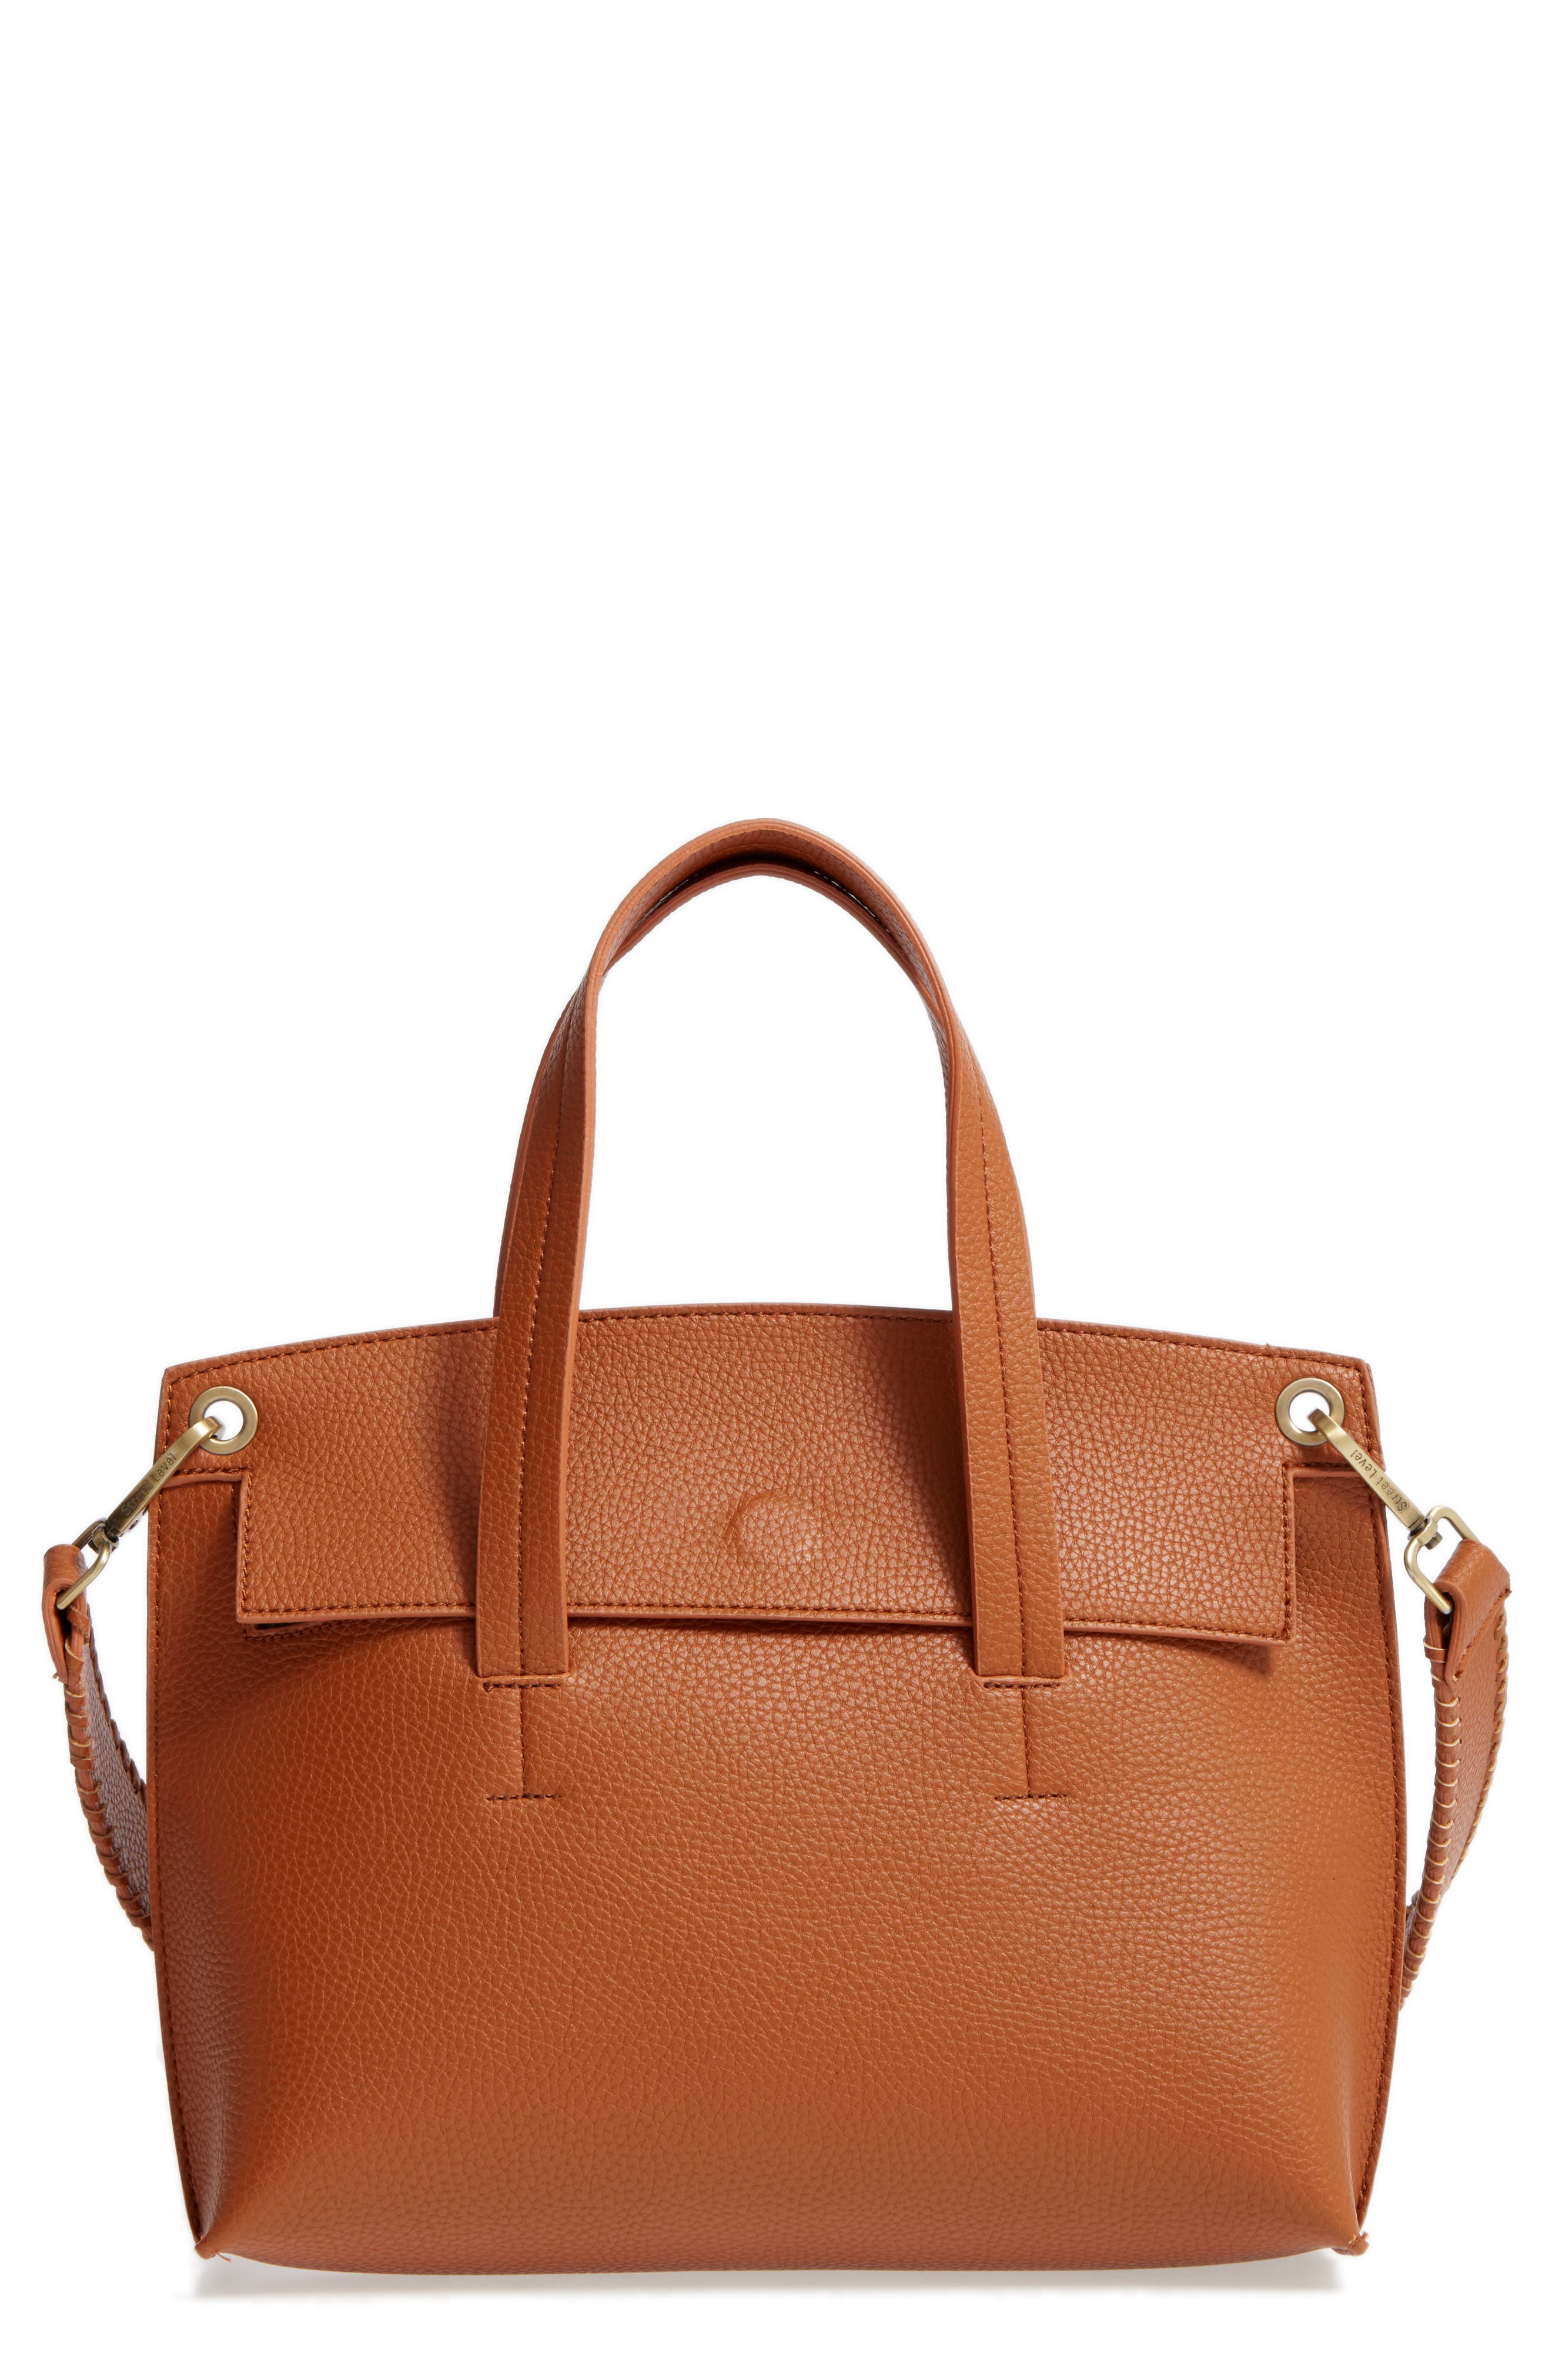 Main Image - Street Level Faux Leather Crossbody Bag